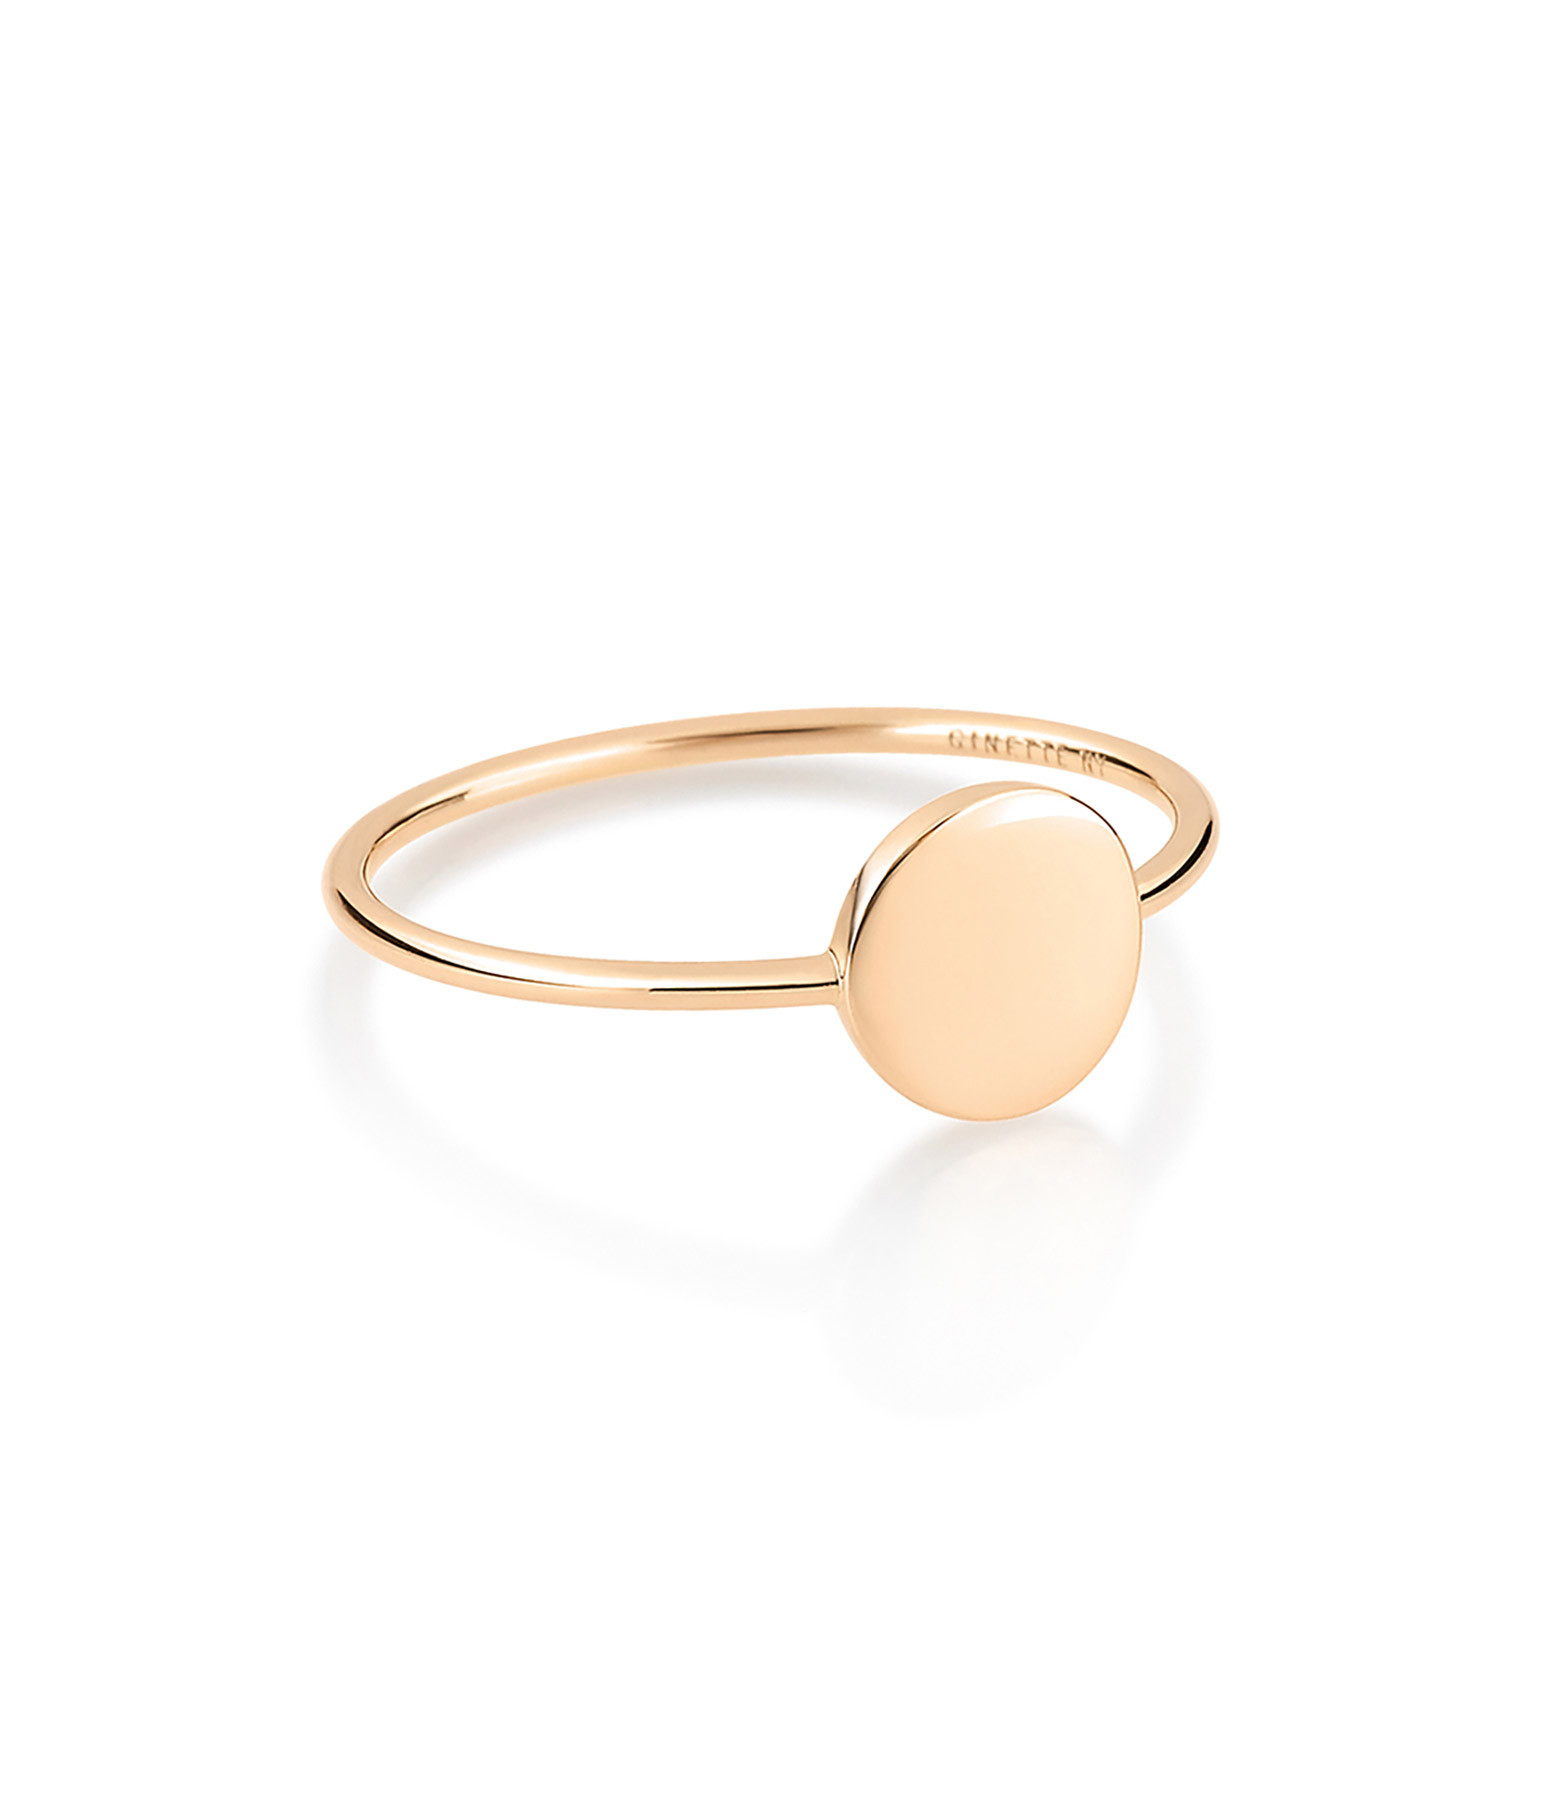 GINETTE_NY - Bague Mini Ever Disc